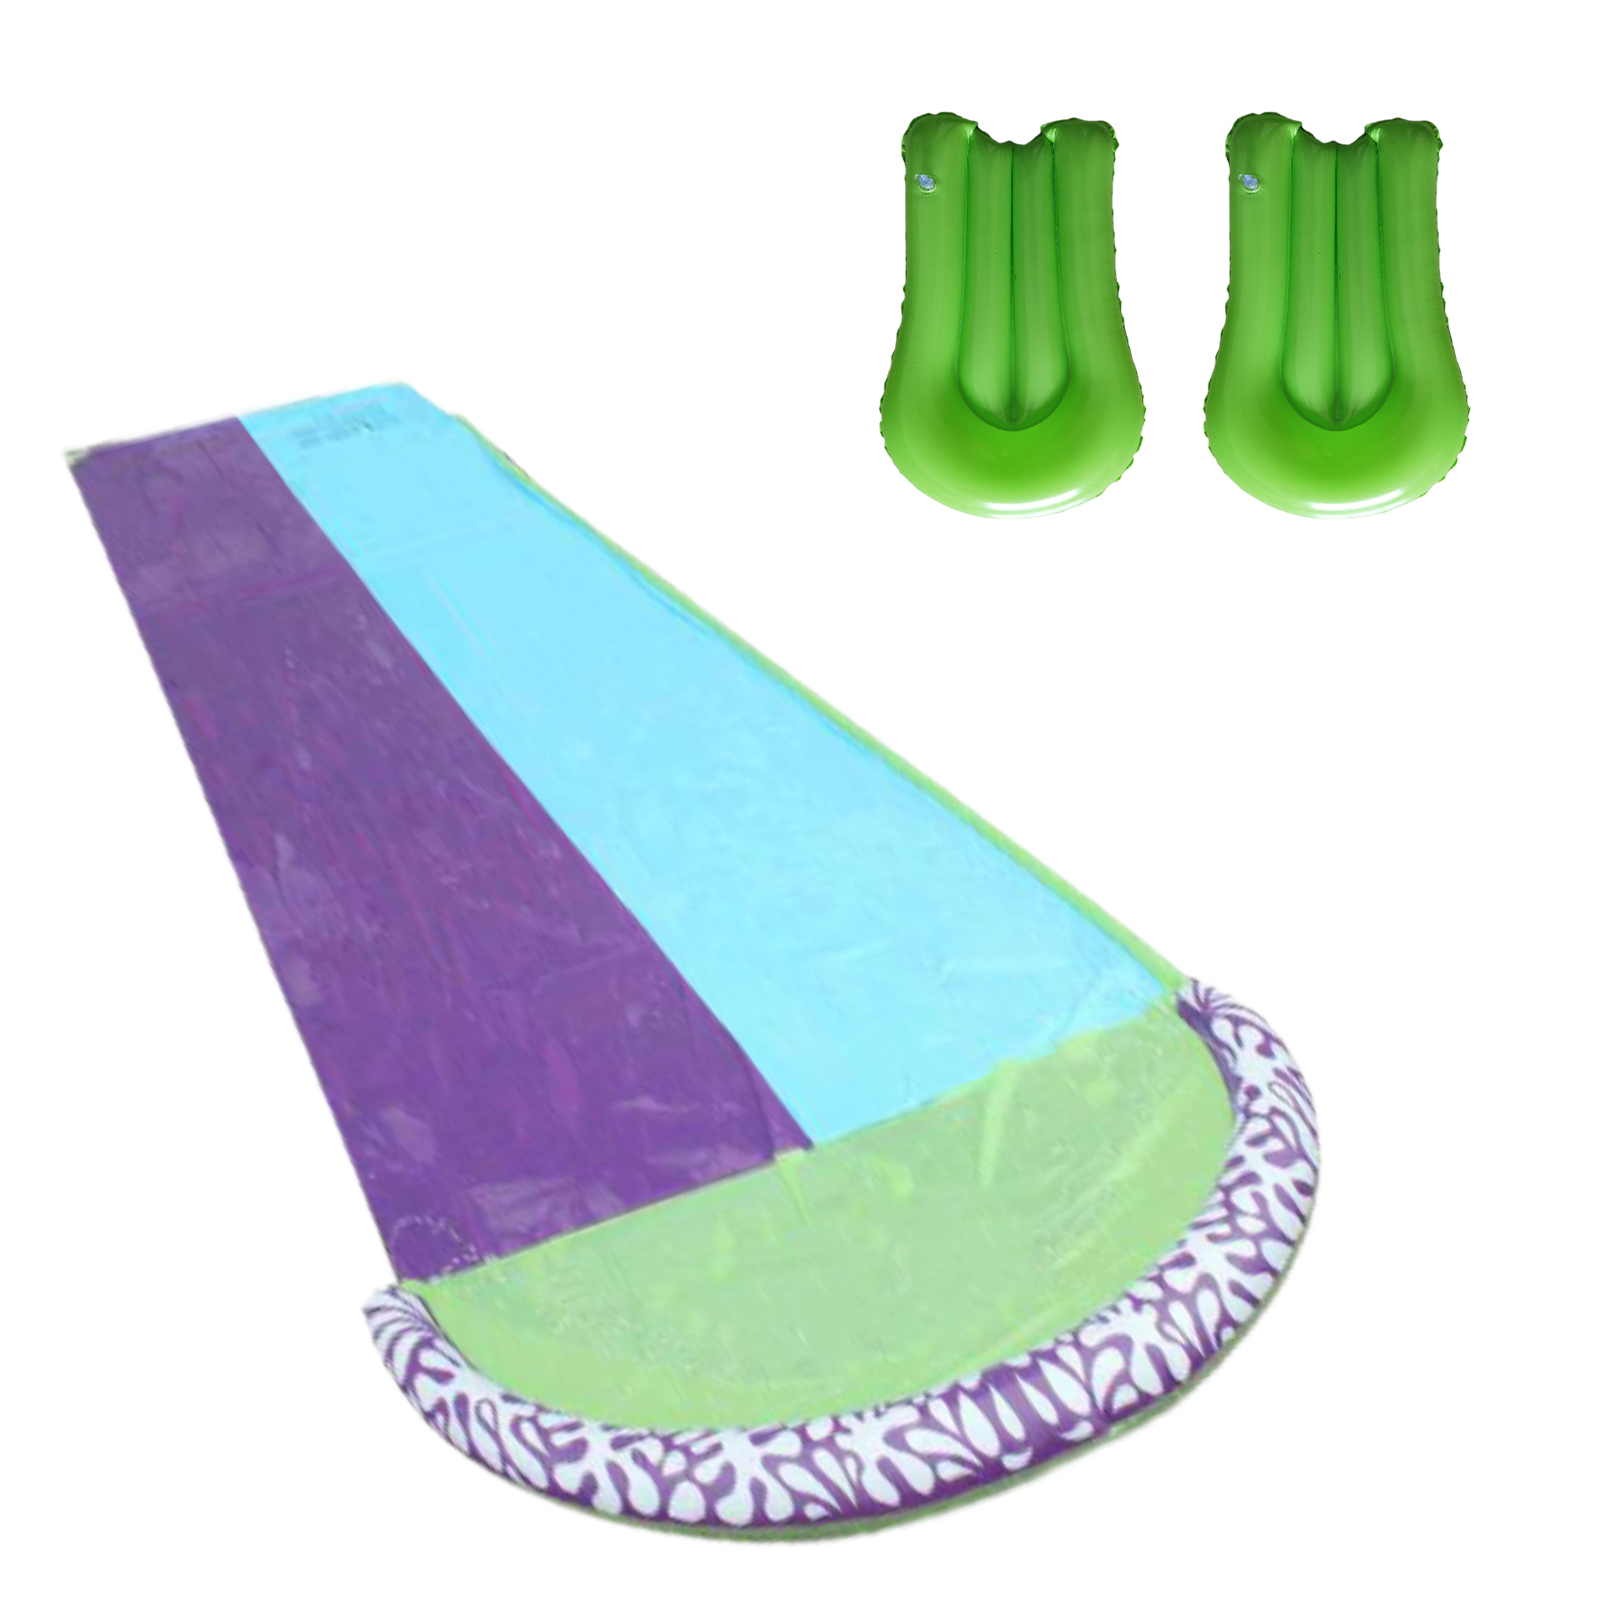 PVC Double Giant Water Water Slide Lawn Water Slide Double PVC Outdoor Water Toy Summer Water Games Center Water Toy For Kids